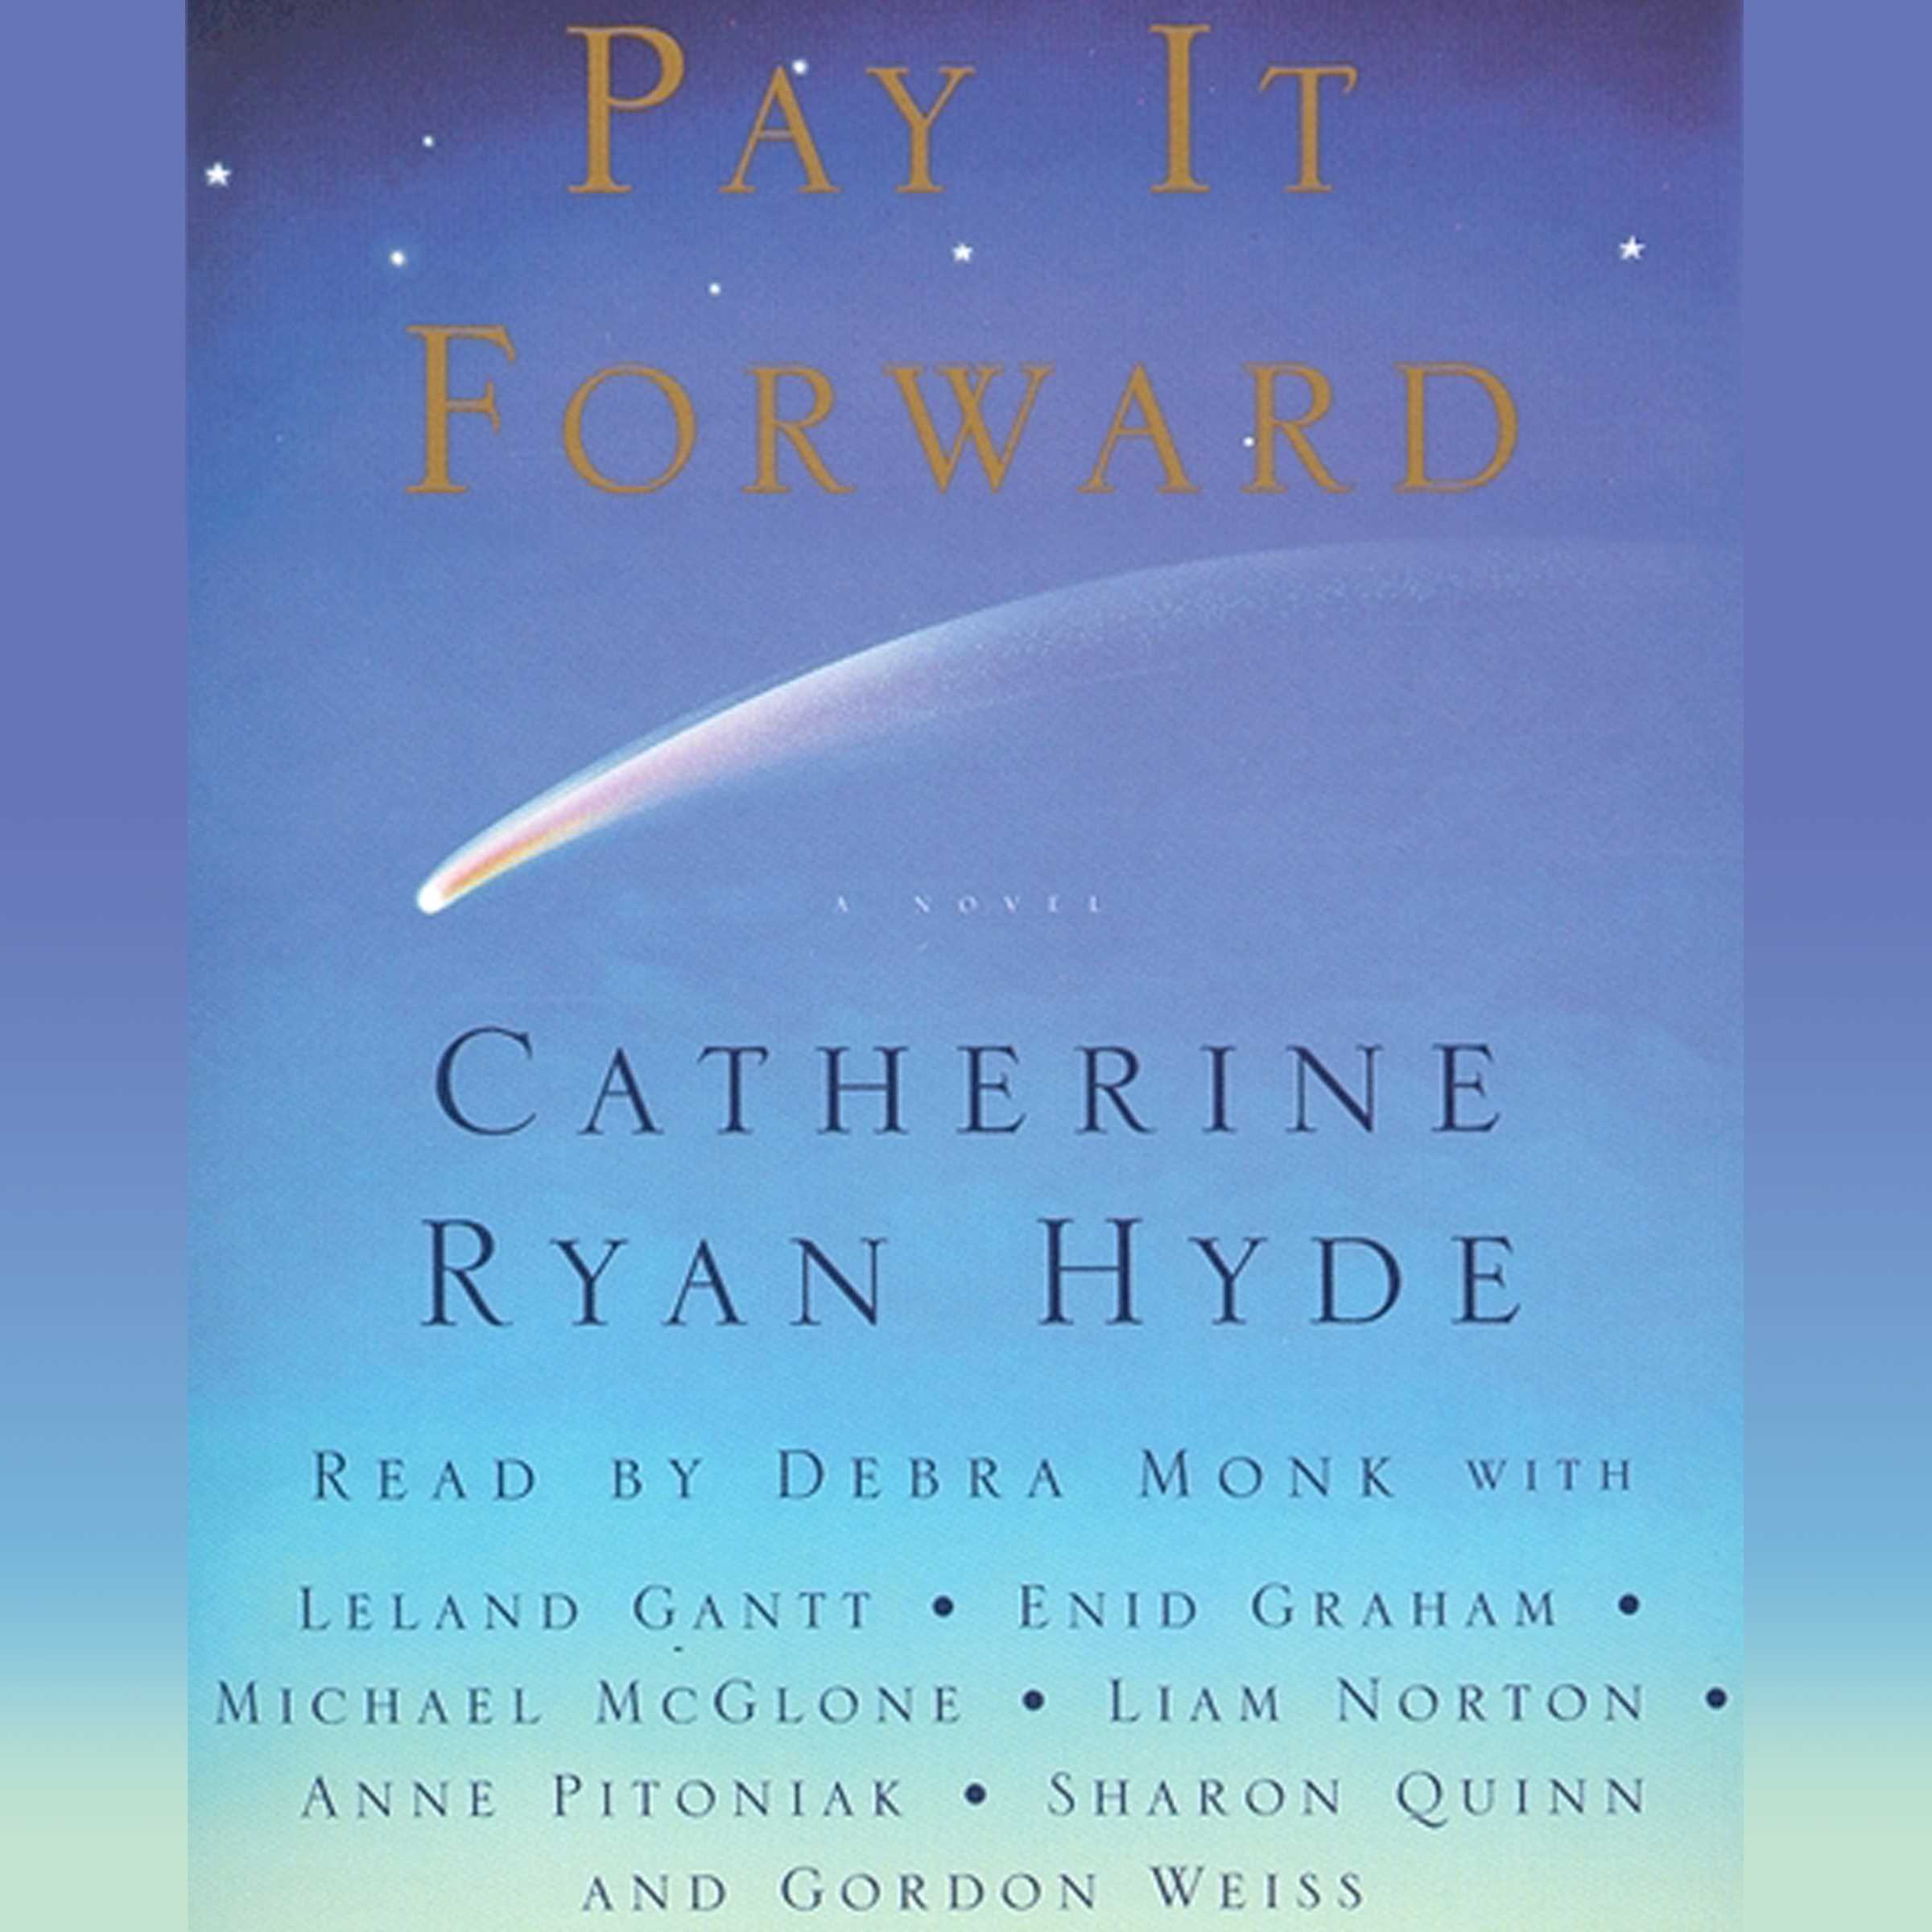 Pay-it-forward-9780743519946_hr